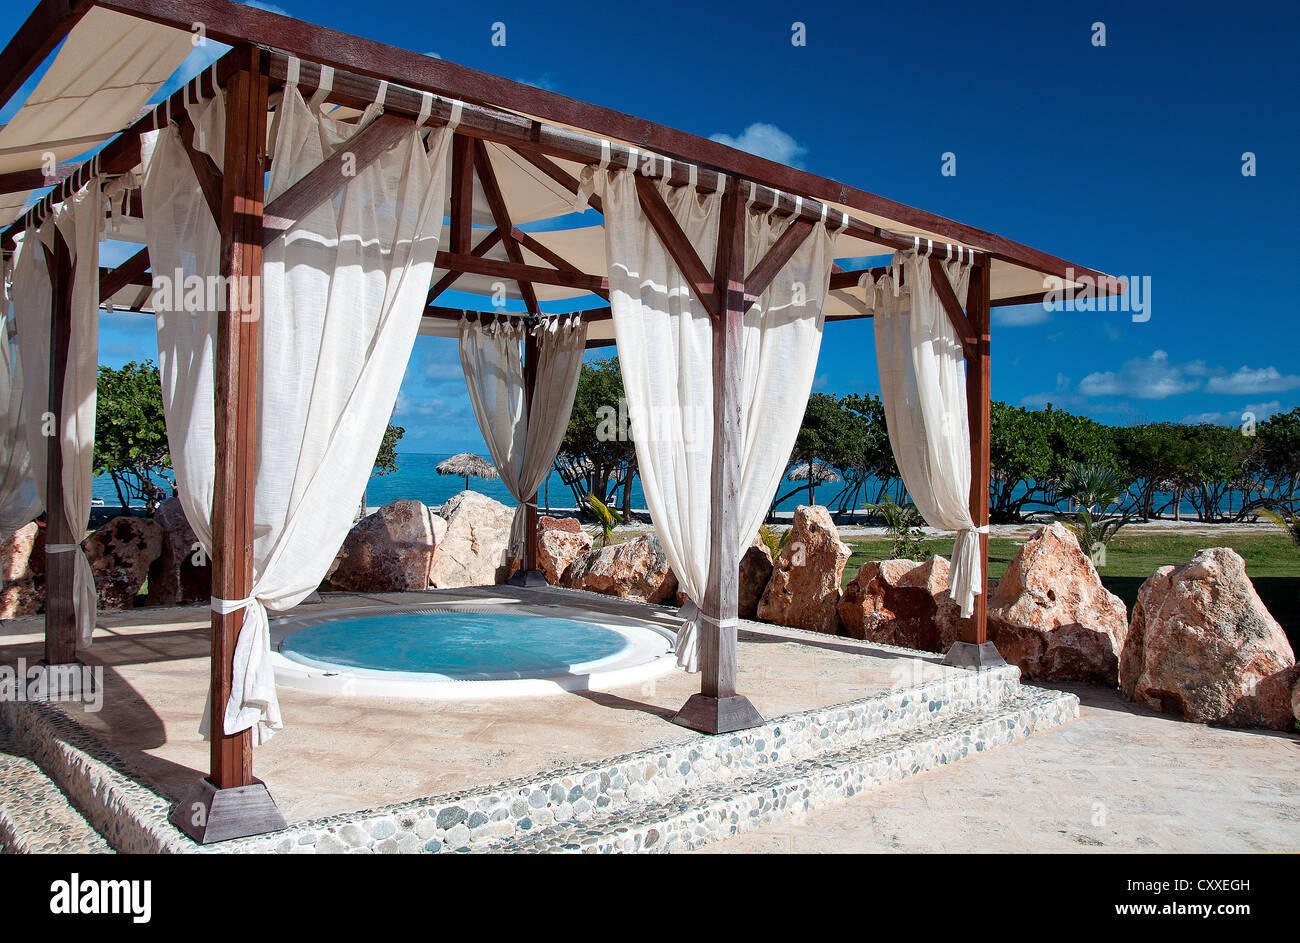 Luxury SPA resort with jacuzzi in the open air Stock Photo: 50983985 ...